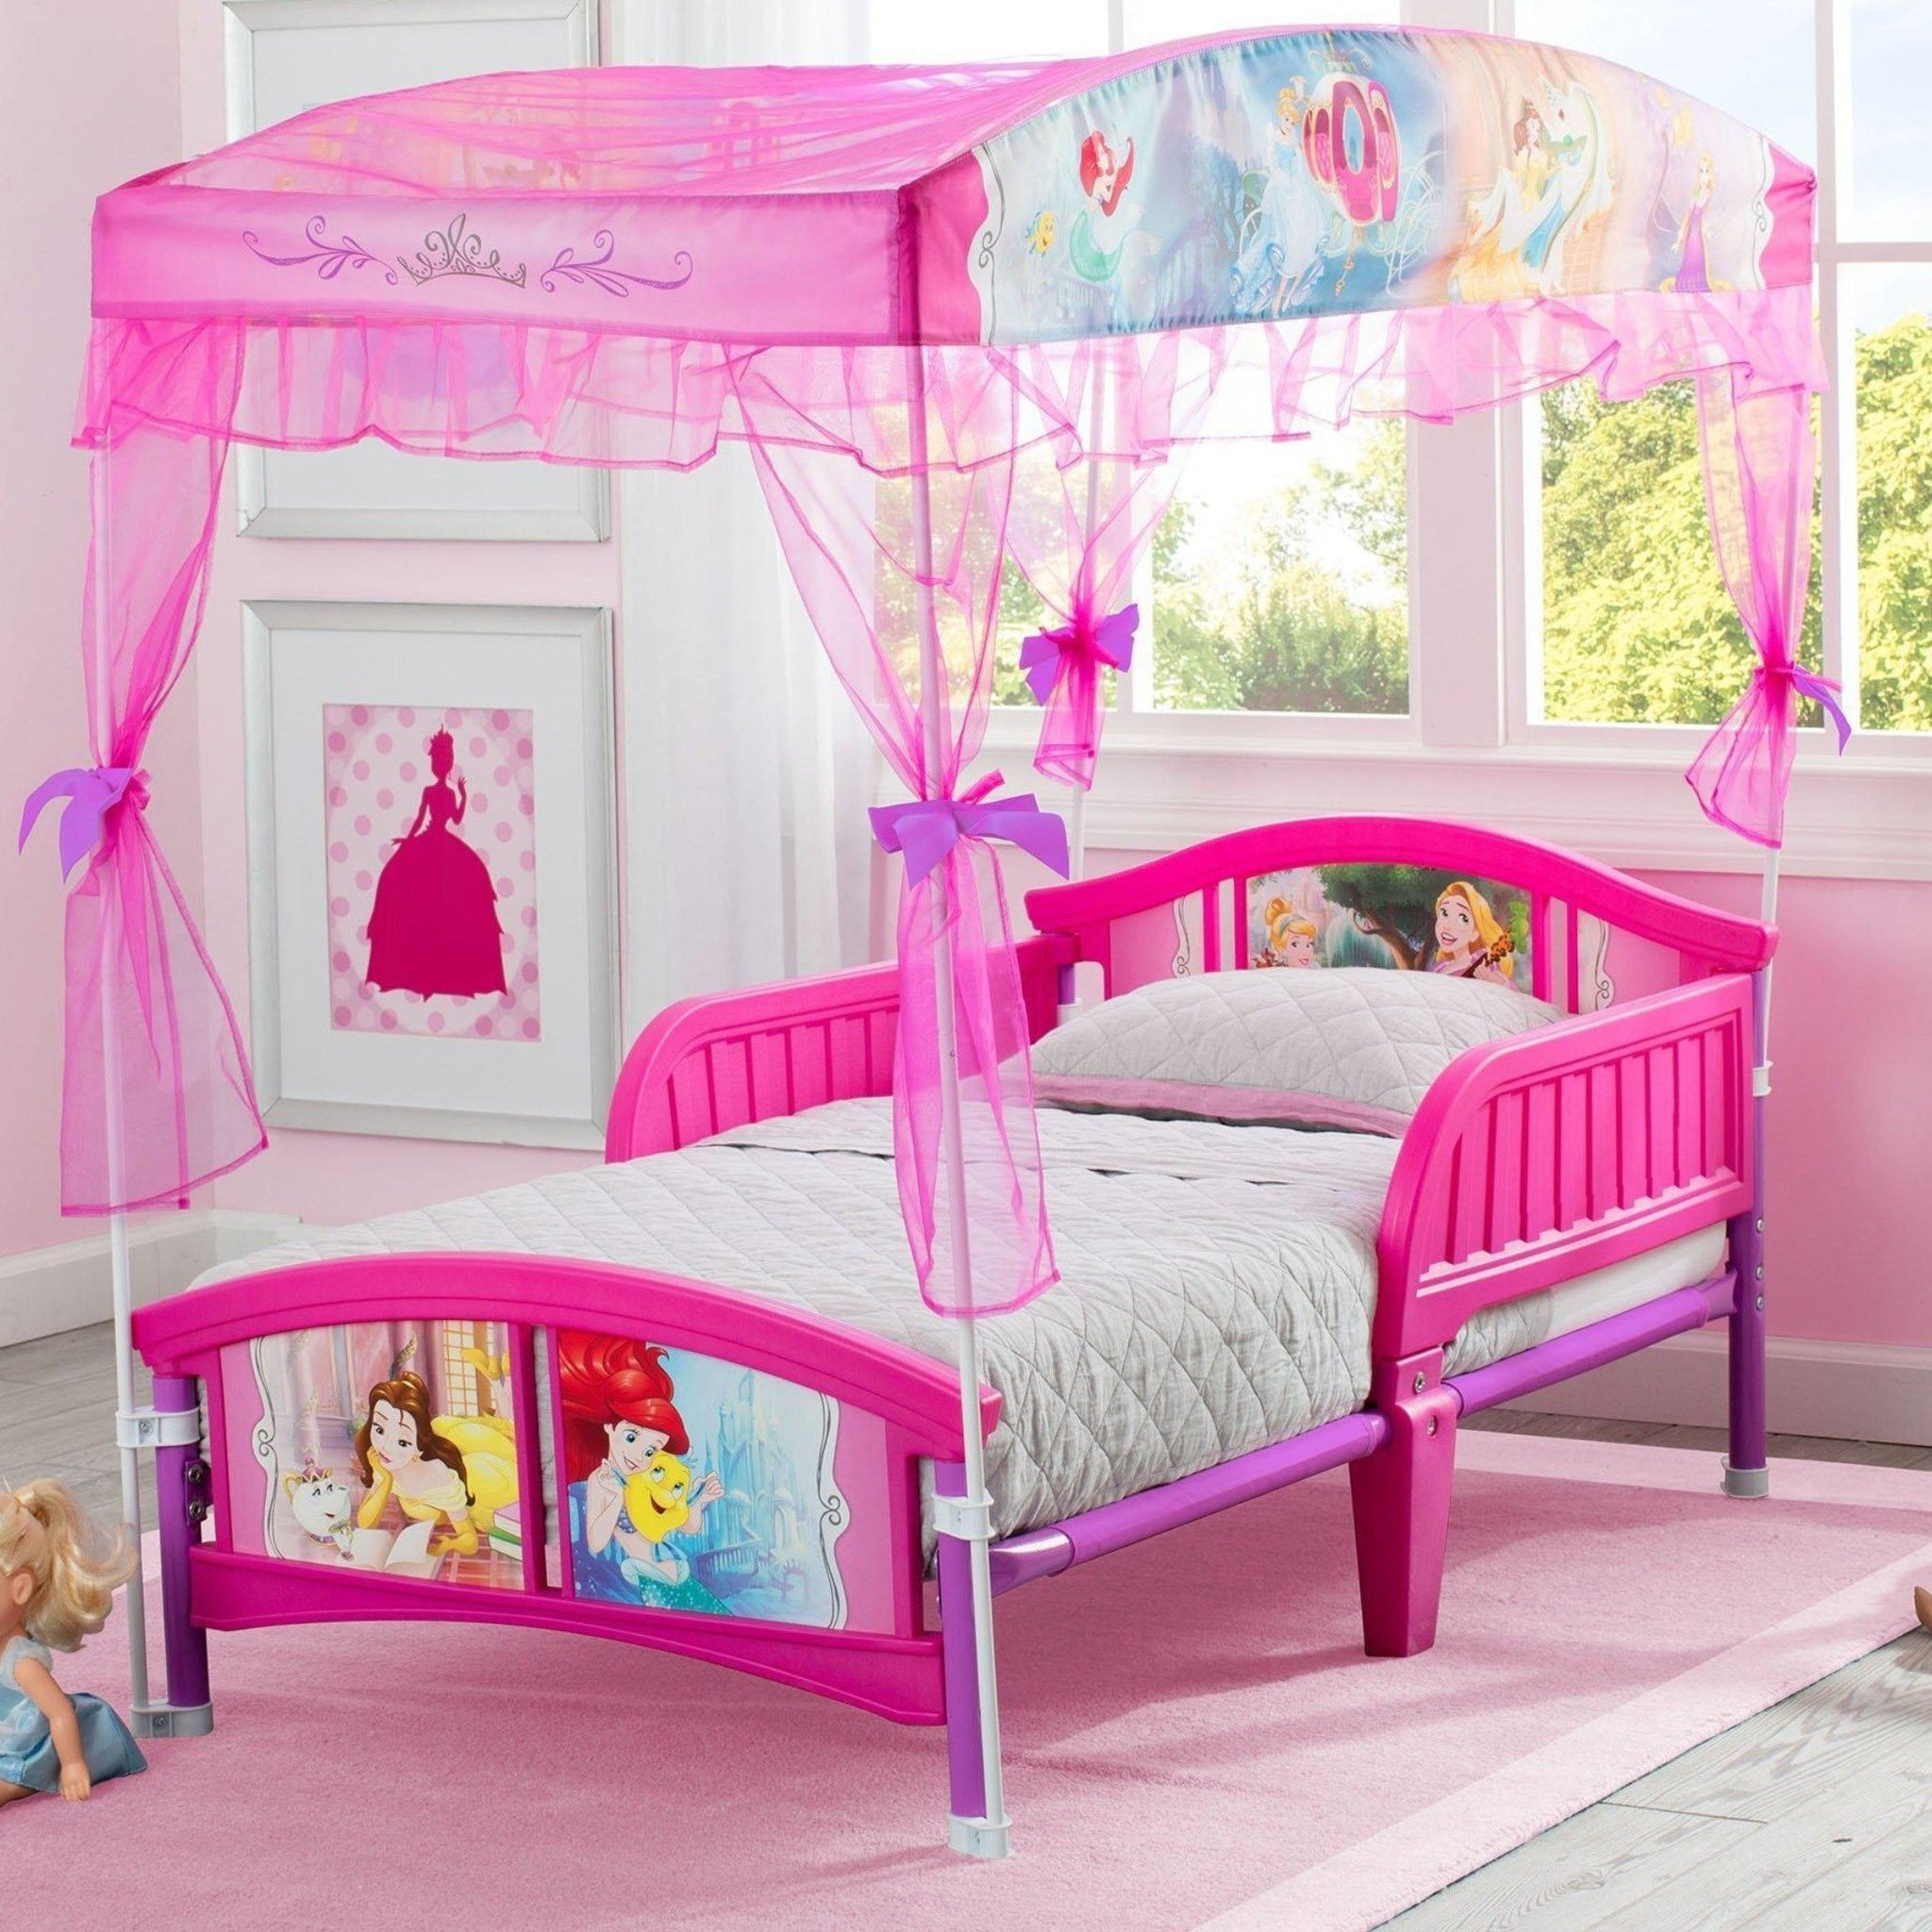 Delta Children Princess Canopy Toddler Bed Room View a1a